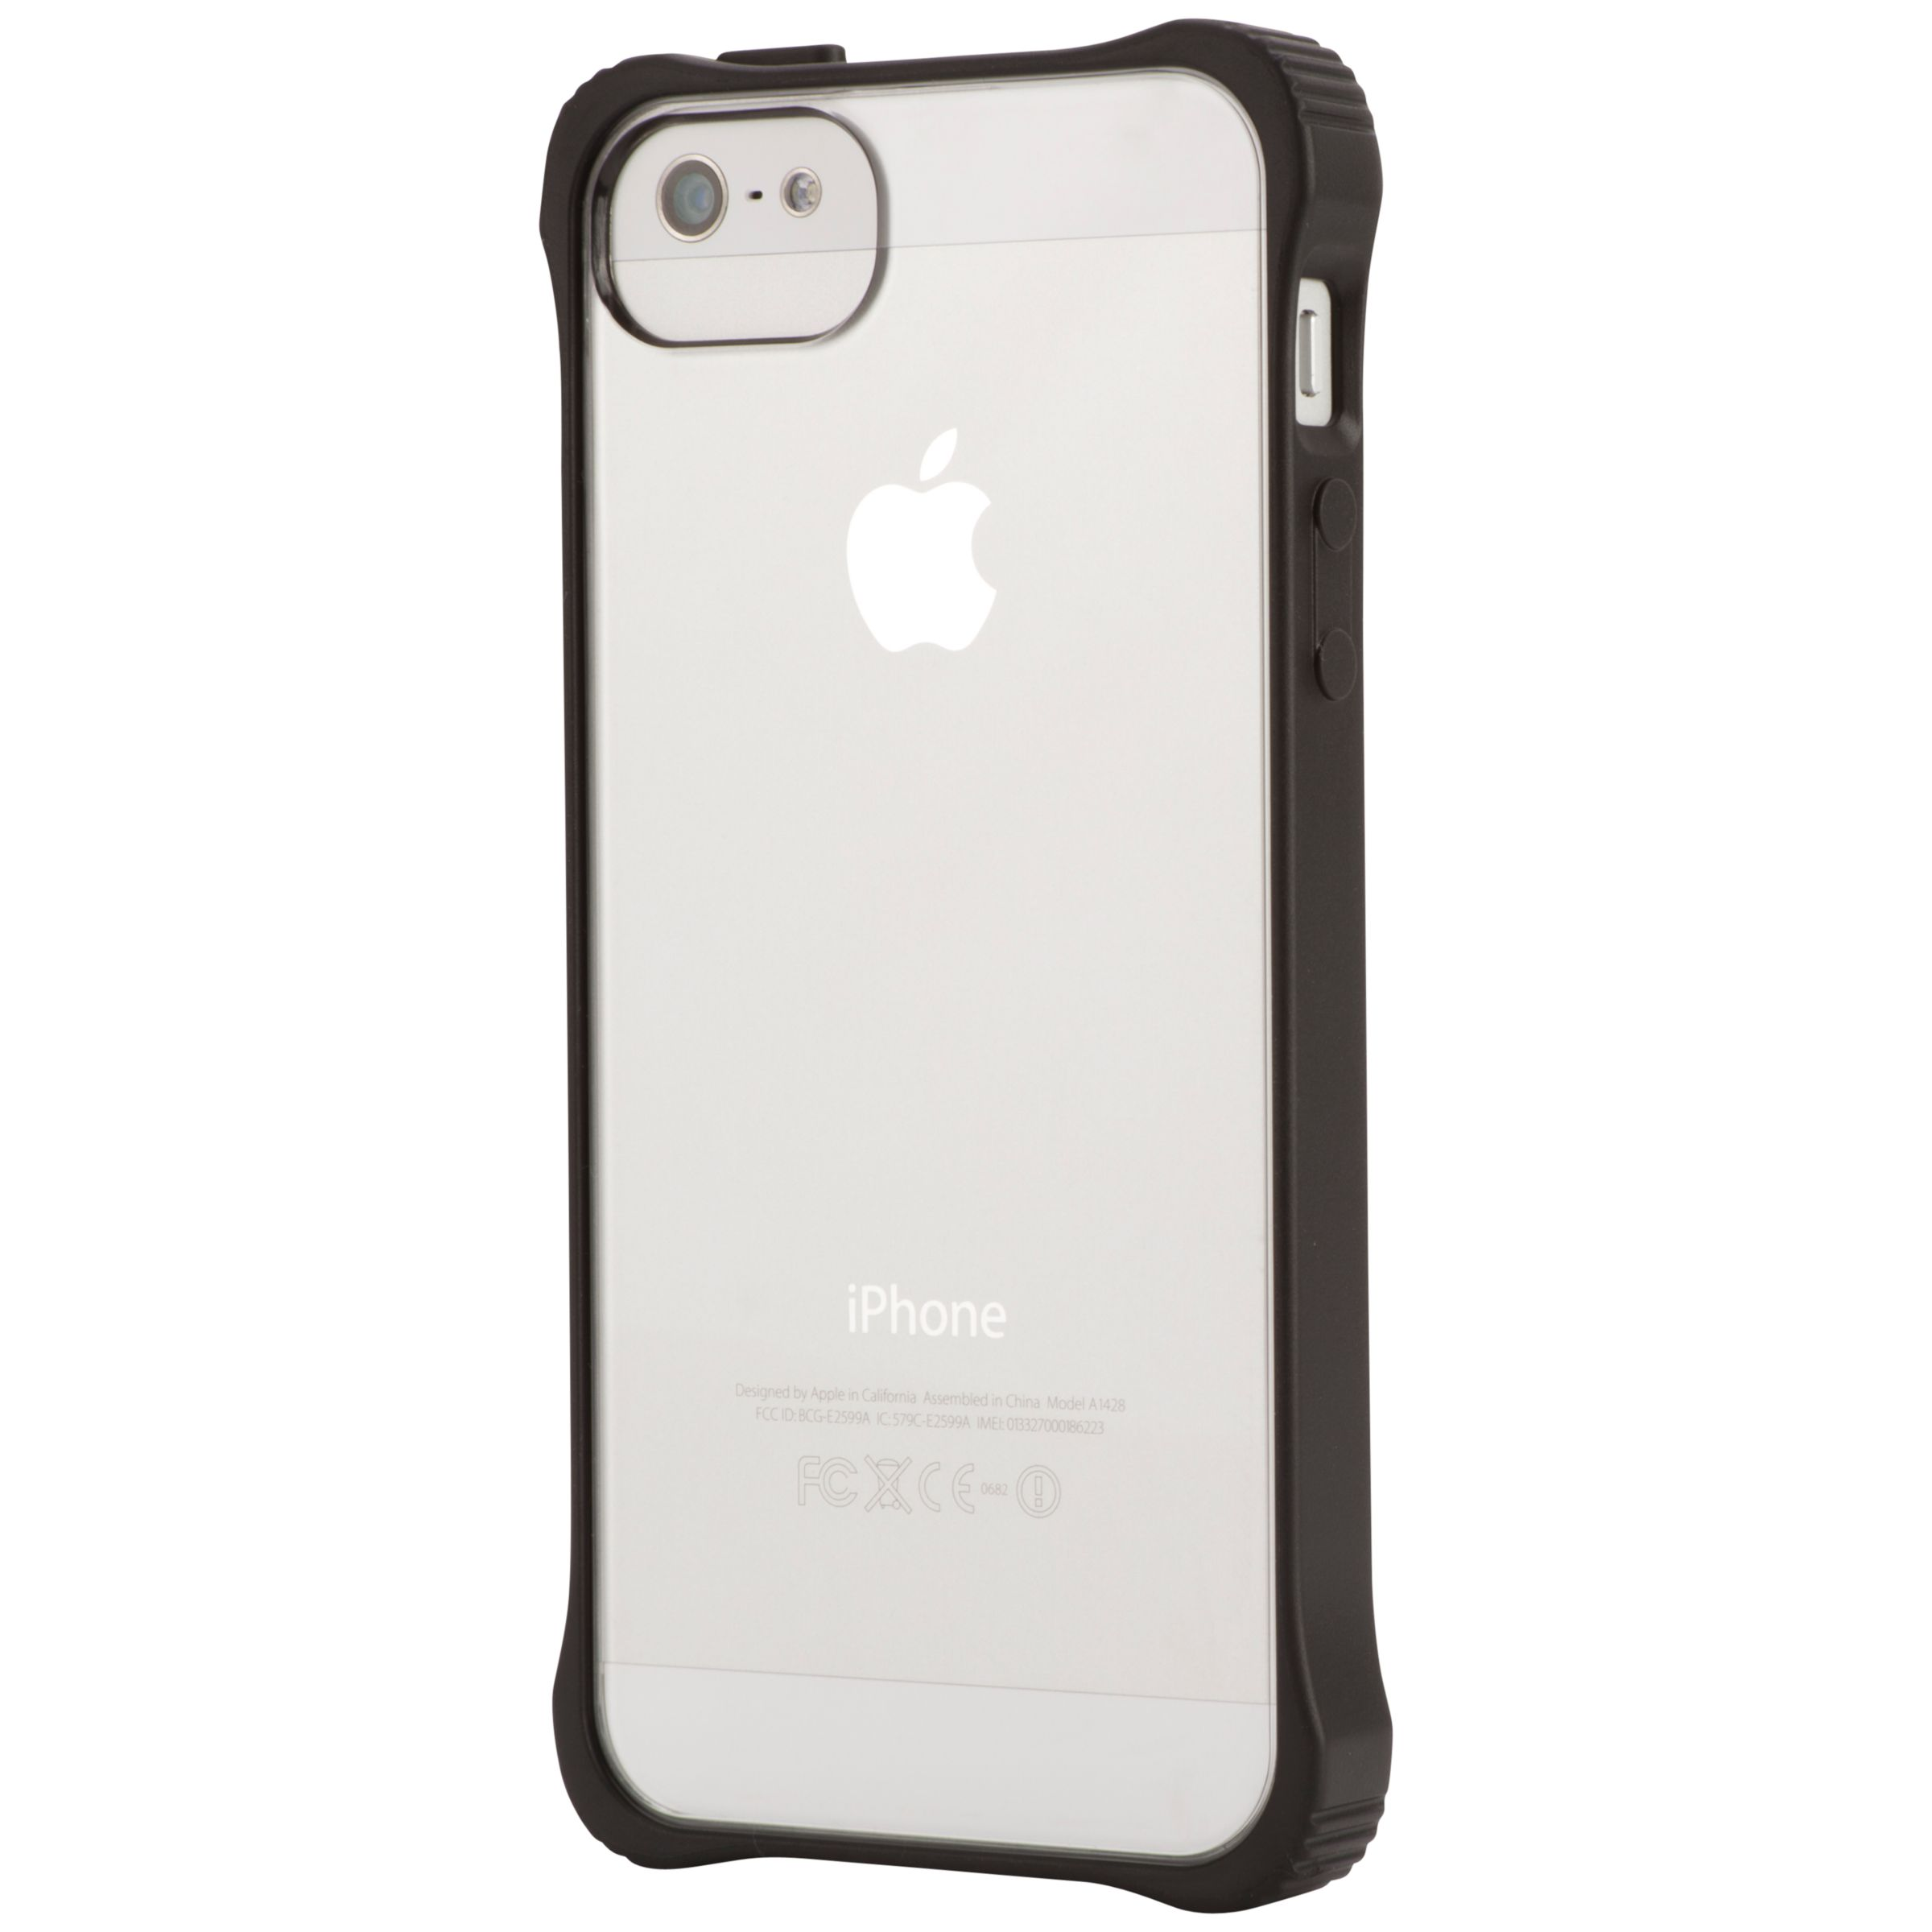 Griffin Griffin Survivor Core Case for iPhone 5 & 5s, Clear back with black bumper